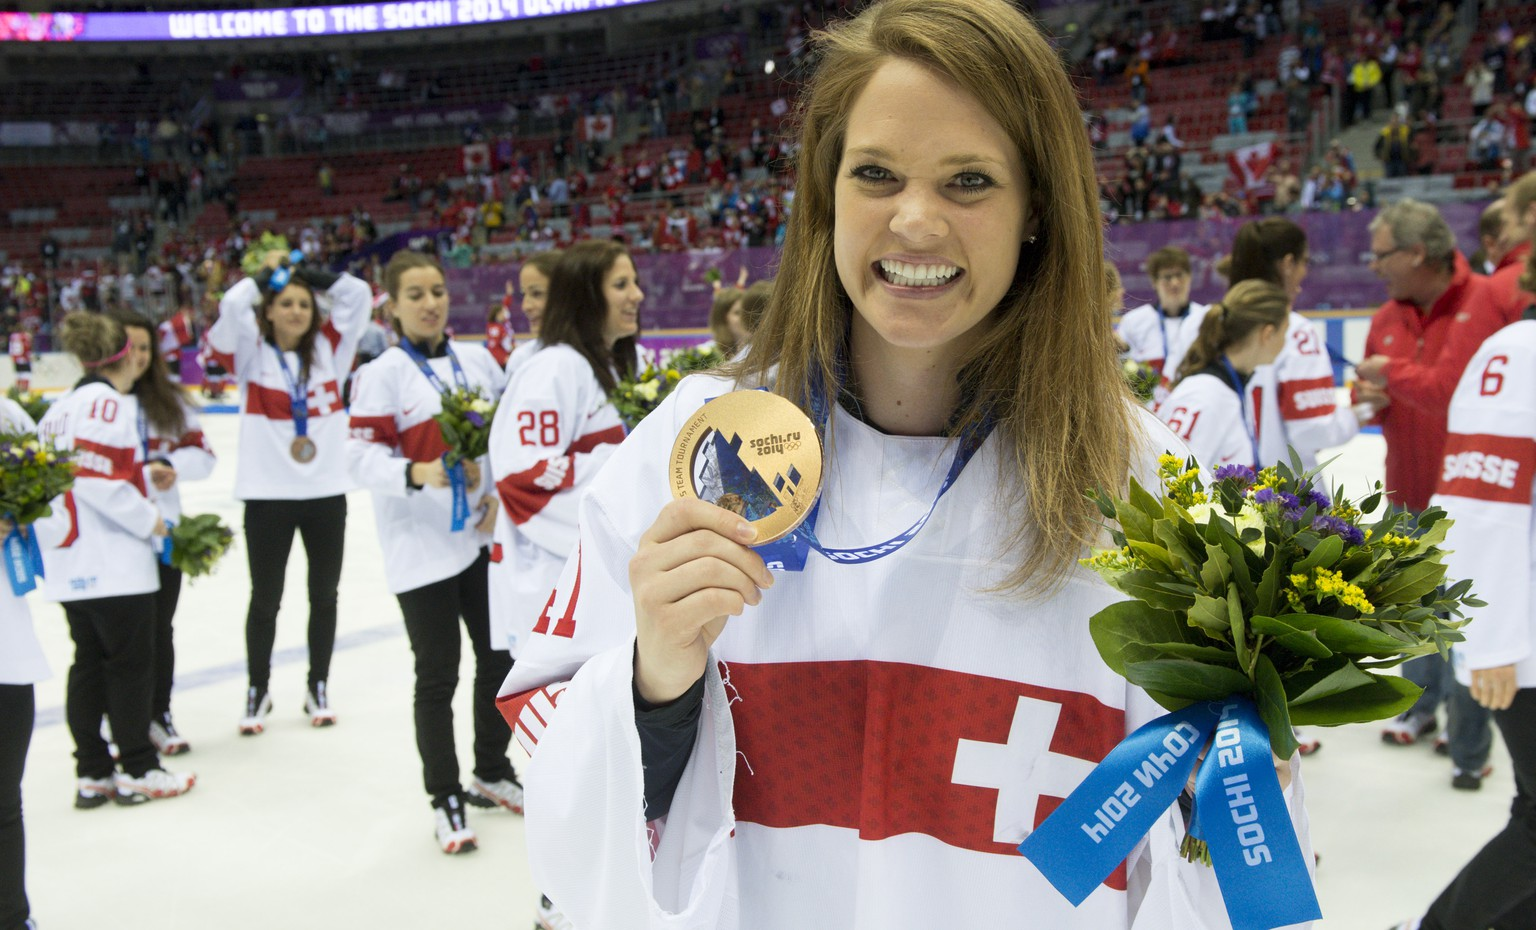 Switzerland's ice hockey women goalkeeper Florence Schelling celebrates her bronze medal during the women's ice hockey victory ceremony at the XXII Winter Olympics 2014 Sochi, at the Bolshoy Ice Dome, in Sochi, Russia, on Thursday, February 20, 2014. (KEYSTONE/Laurent Gillieron)